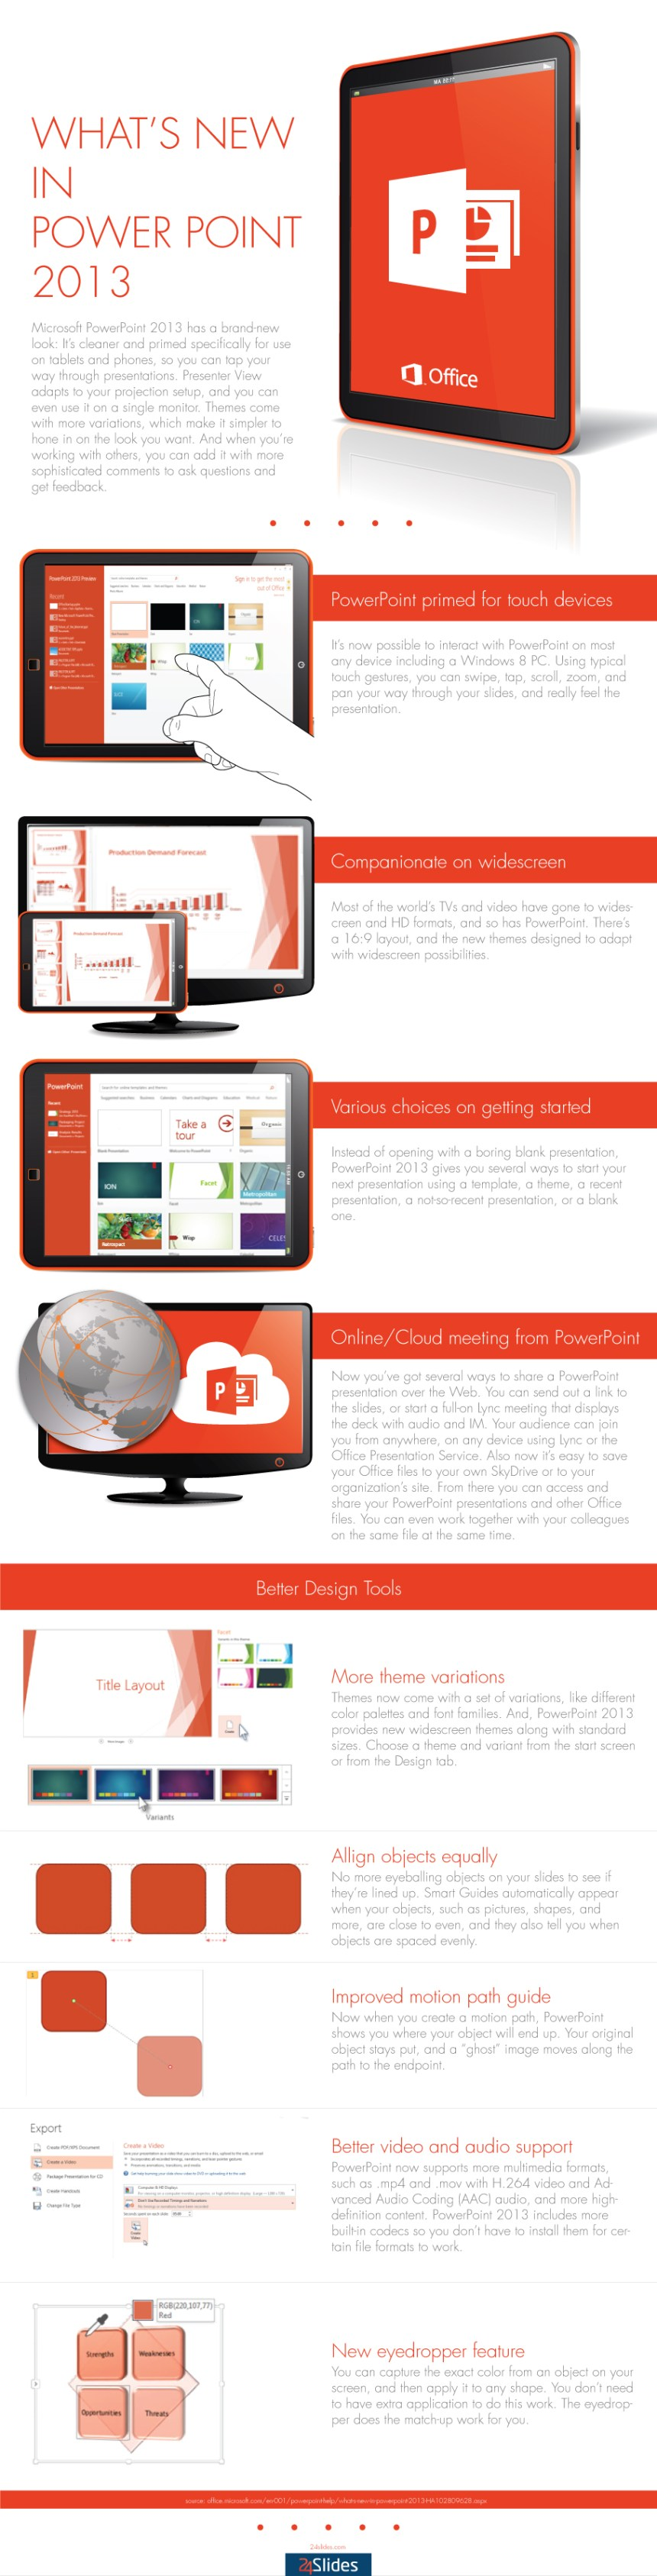 Novedades PowerPoint 2013